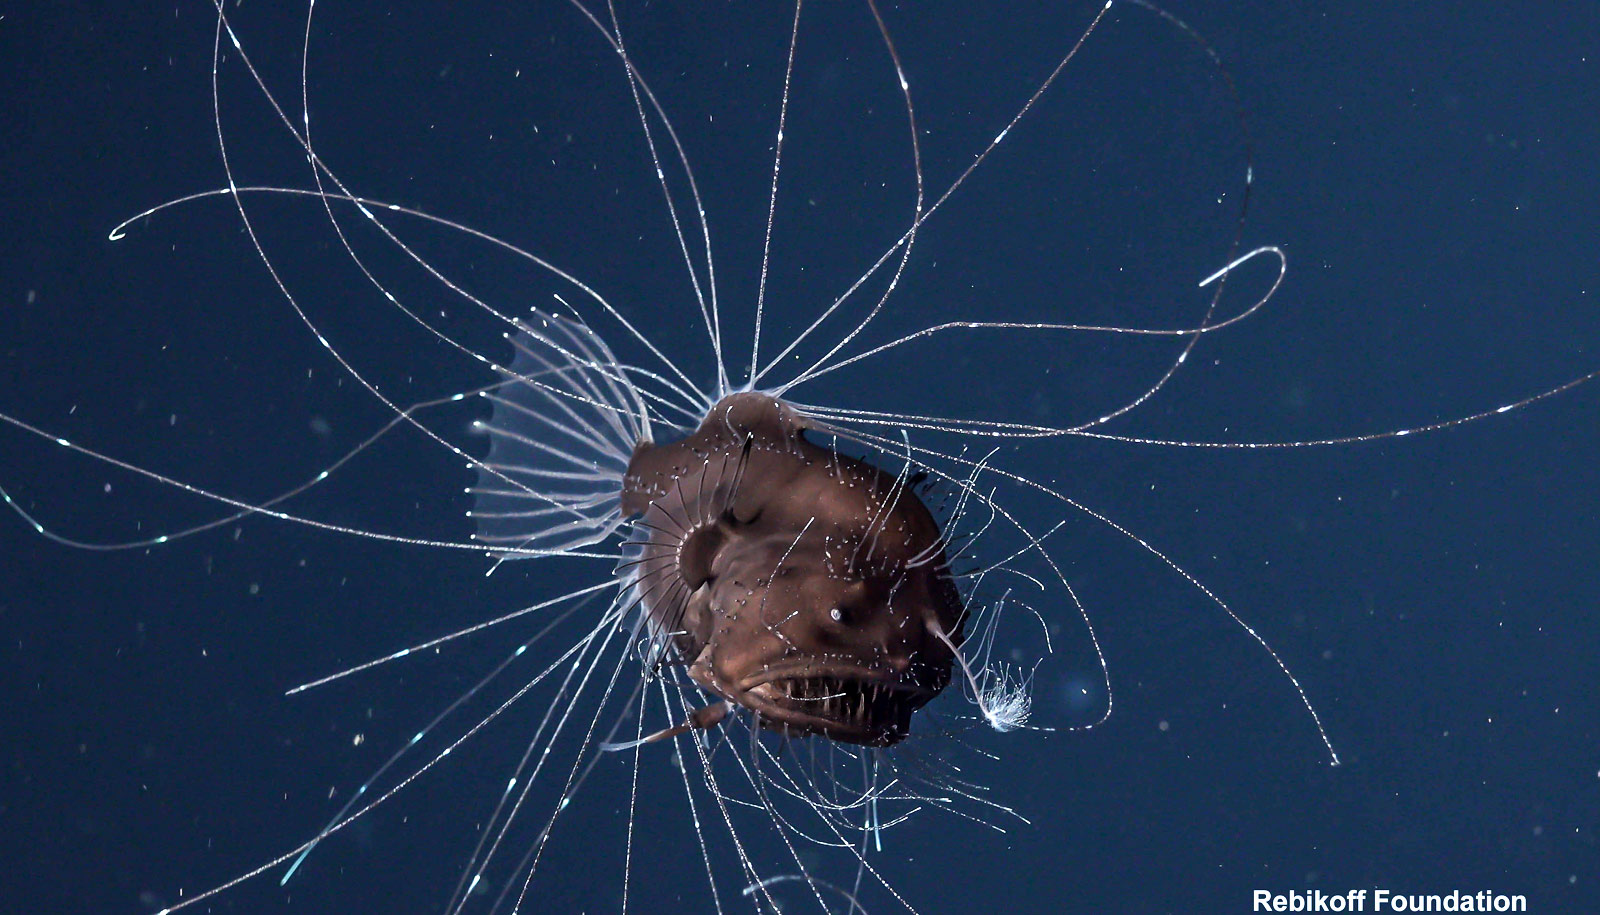 Anglerfish and her 'sexual parasite' seen alive for first time